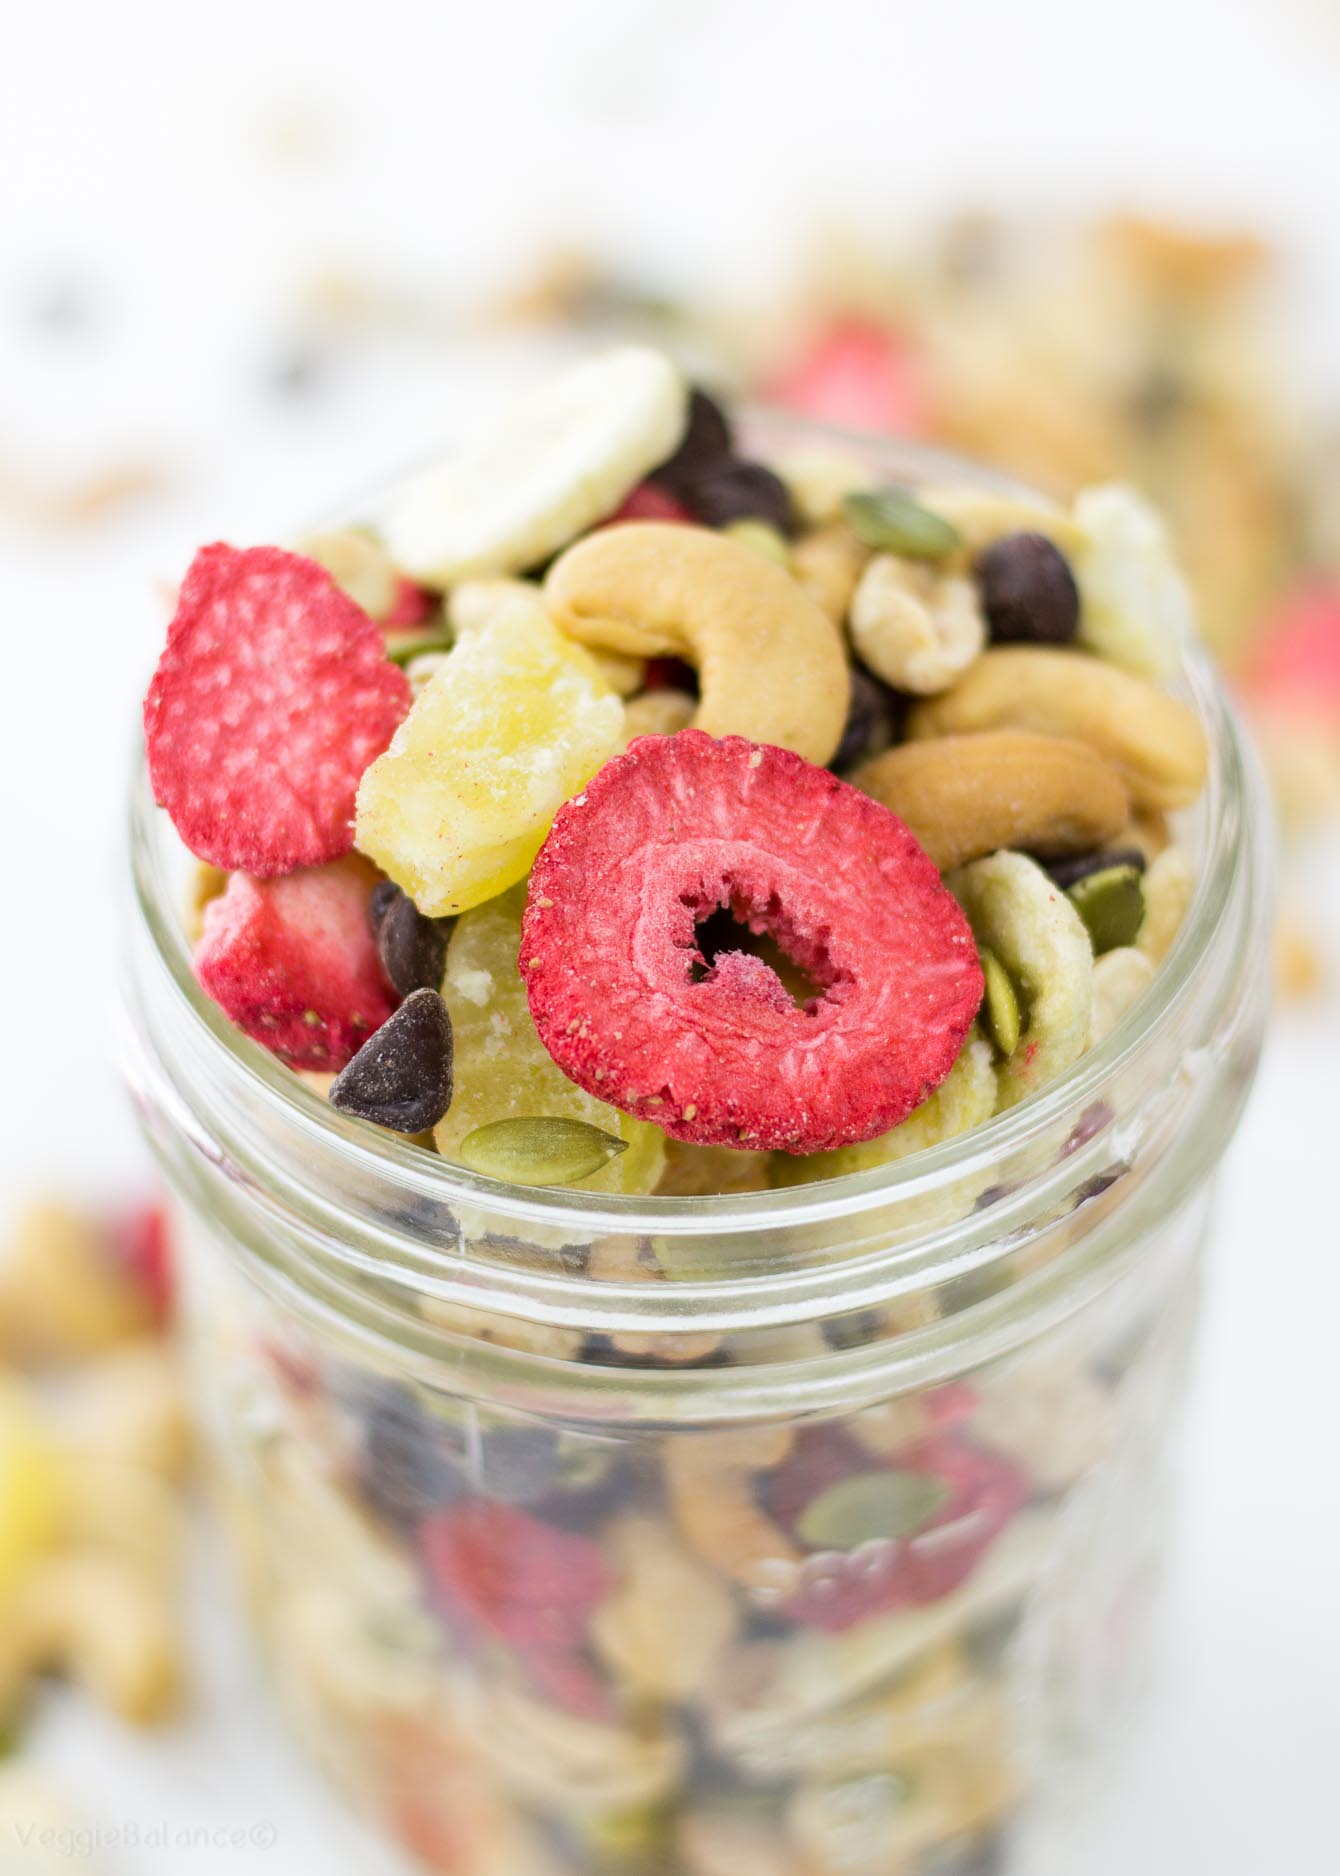 Banana Split Trail Mix recipe featuring 7 easy ingredients including dried bananas, strawberries, pineapple, cashews, peanuts, pumpkins seeds and of course chocolate! A travel snack you'll want for now on. (Gluten Free, Dairy Free, Vegan)